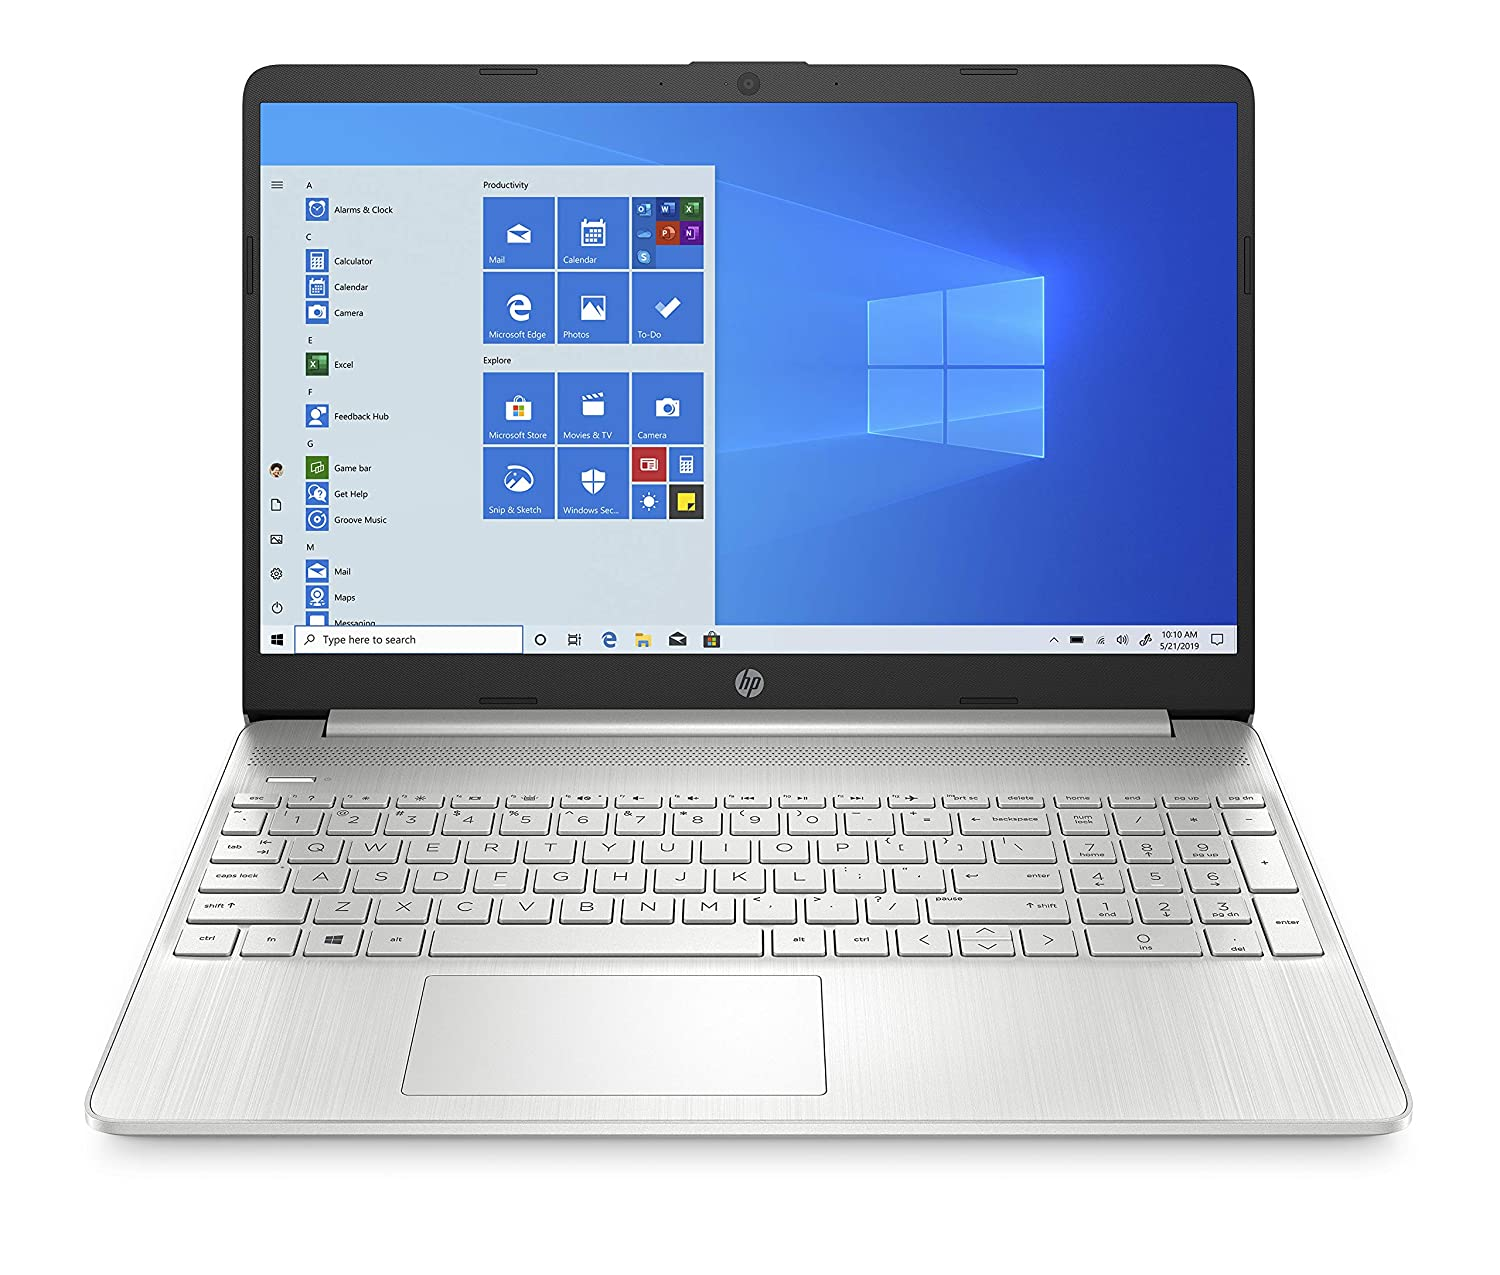 Top 10 Laptops Deals under Amazon Great Indian Sale 2020